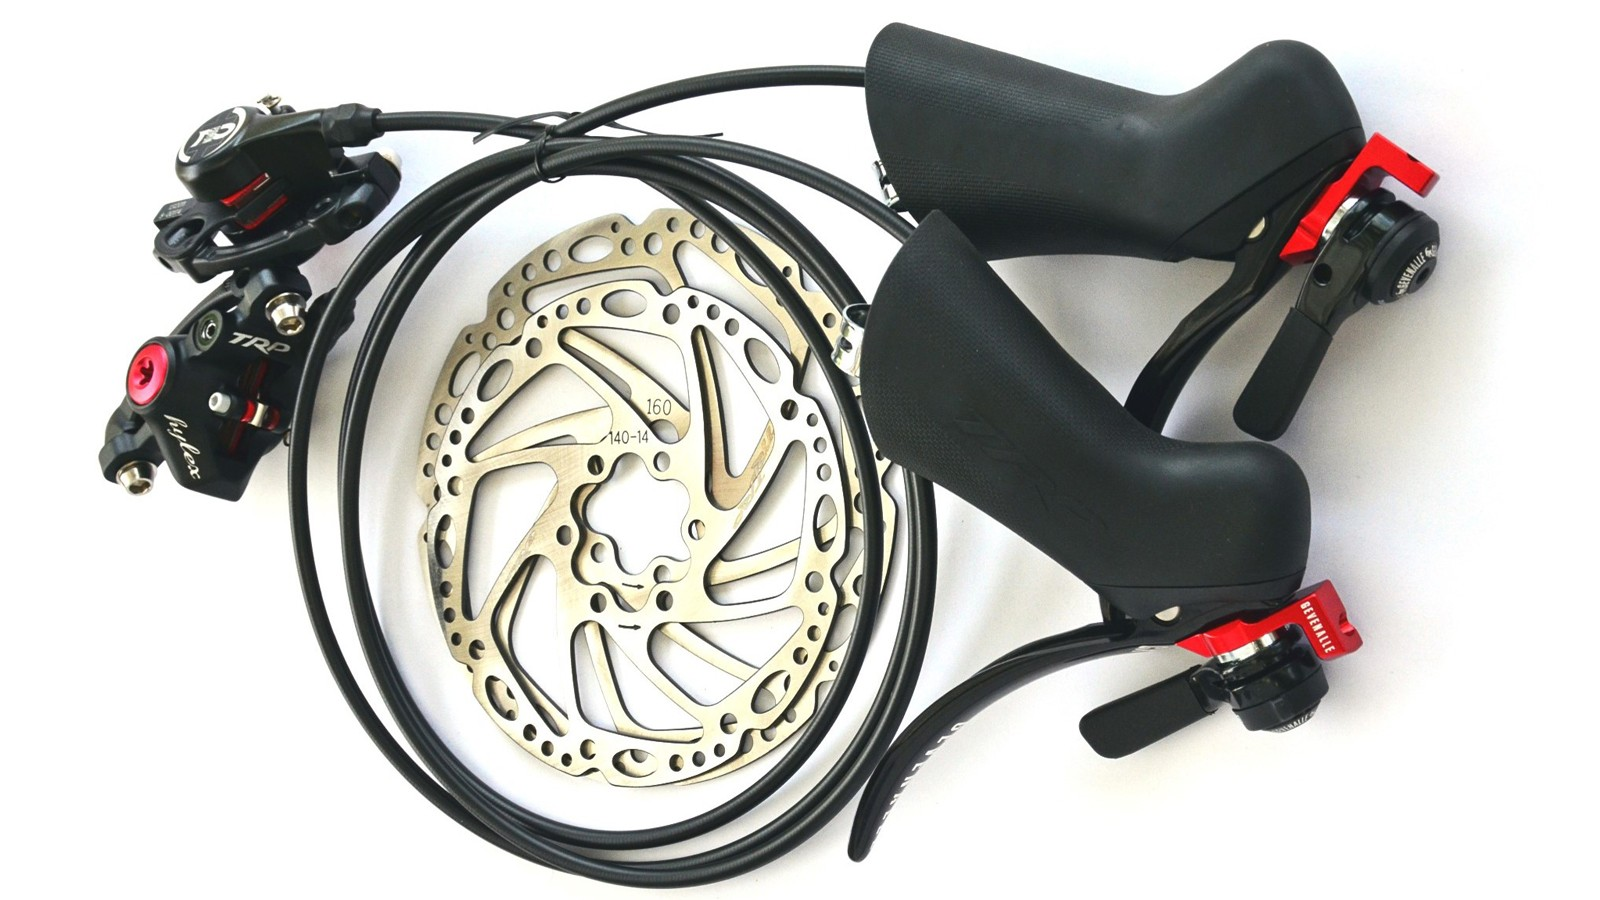 Gevenalle's Hydraulic shift/brake levers use TRP Hylex lever bodies and brake calipers with the company's own lever blades with mounts for thumb shifters